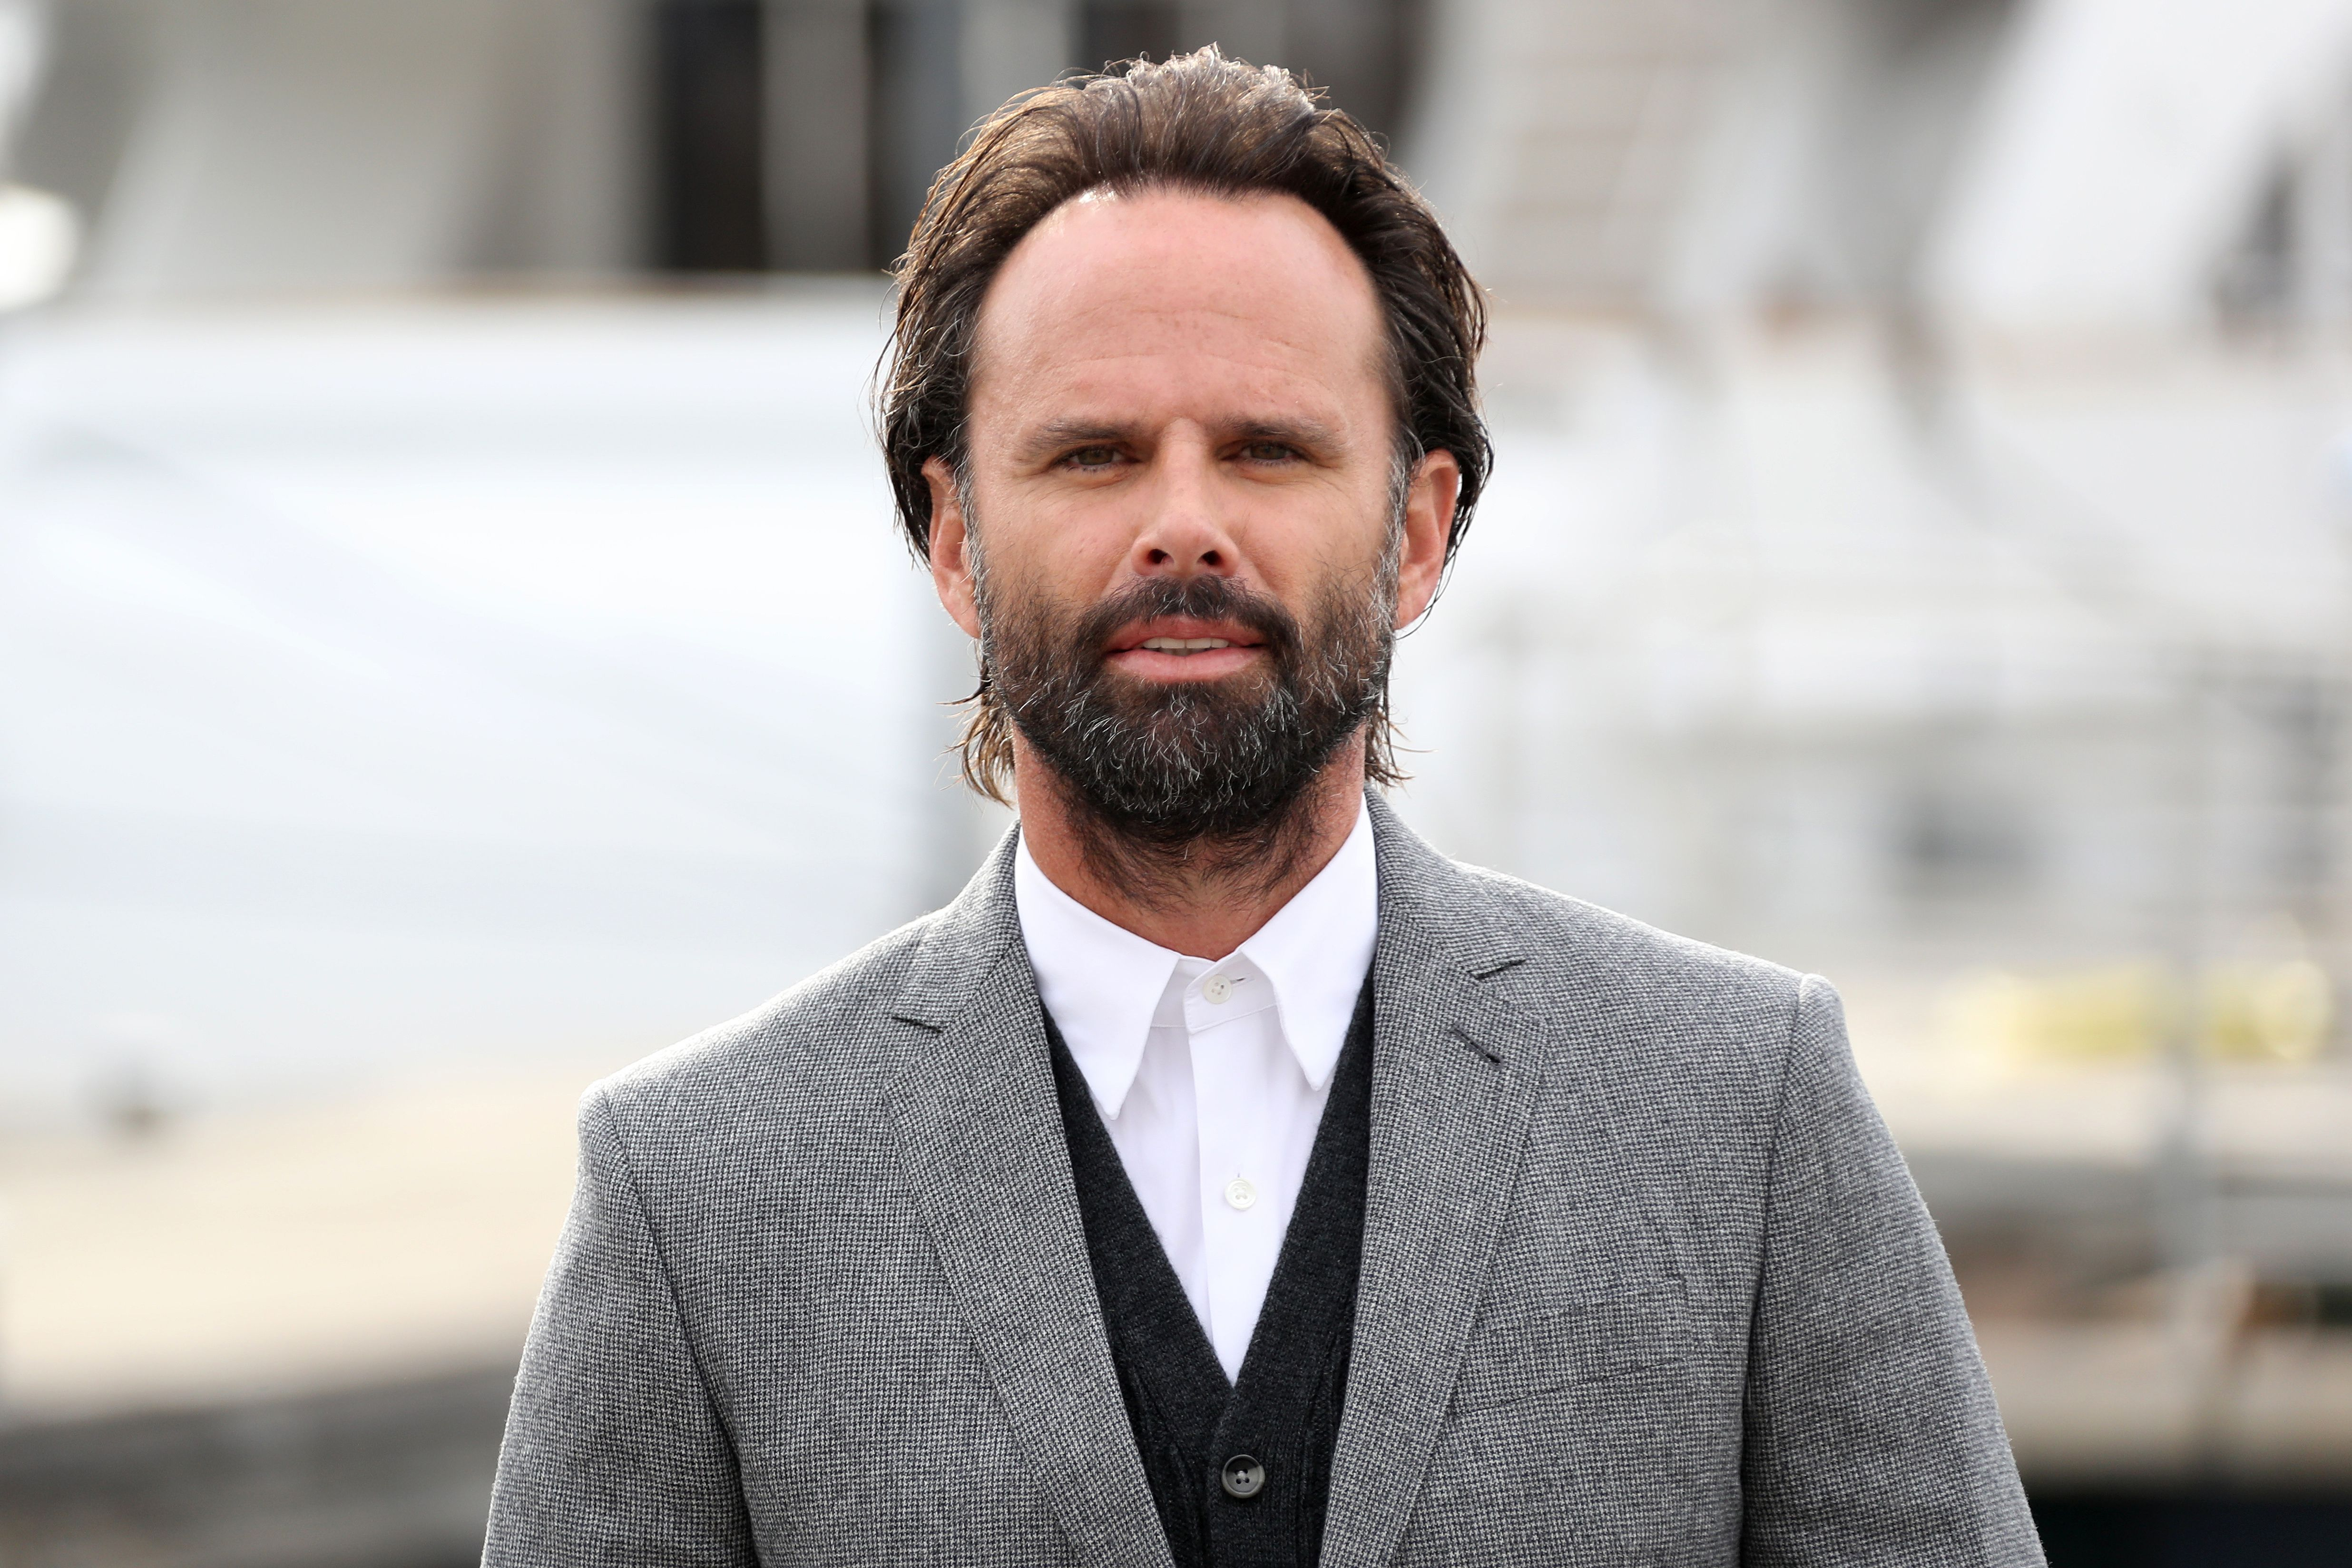 Walton Goggins of Hateful Eight and Django Unchained